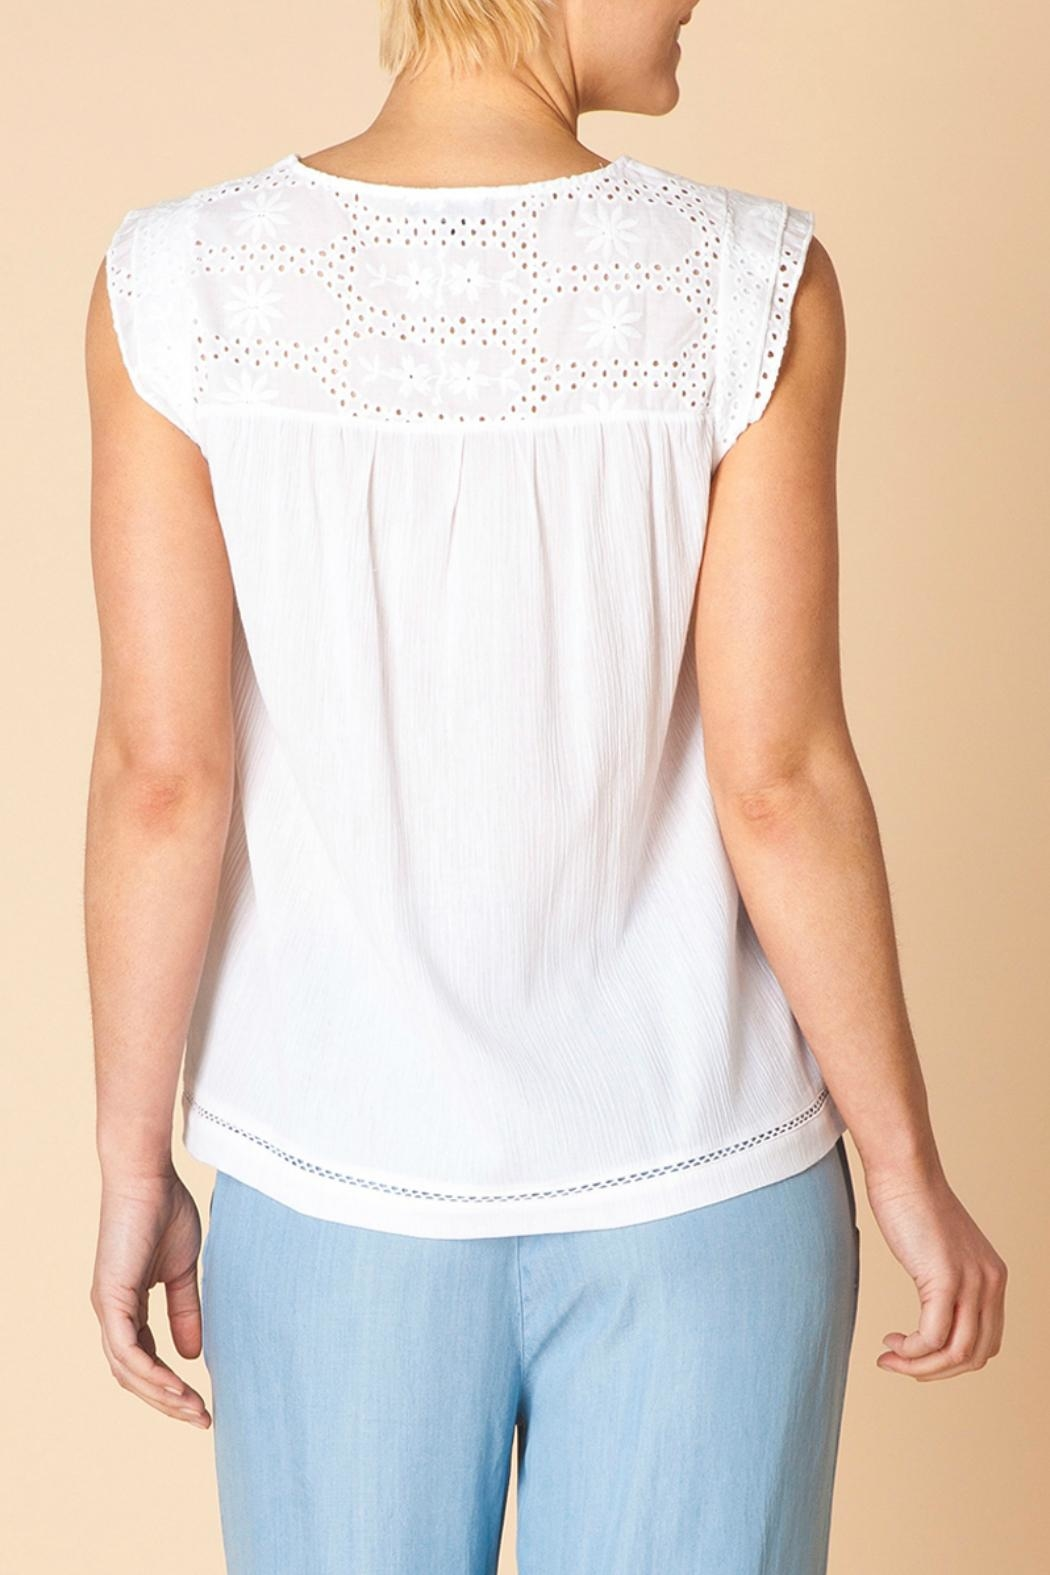 Yest White Eyelet Top - Front Full Image